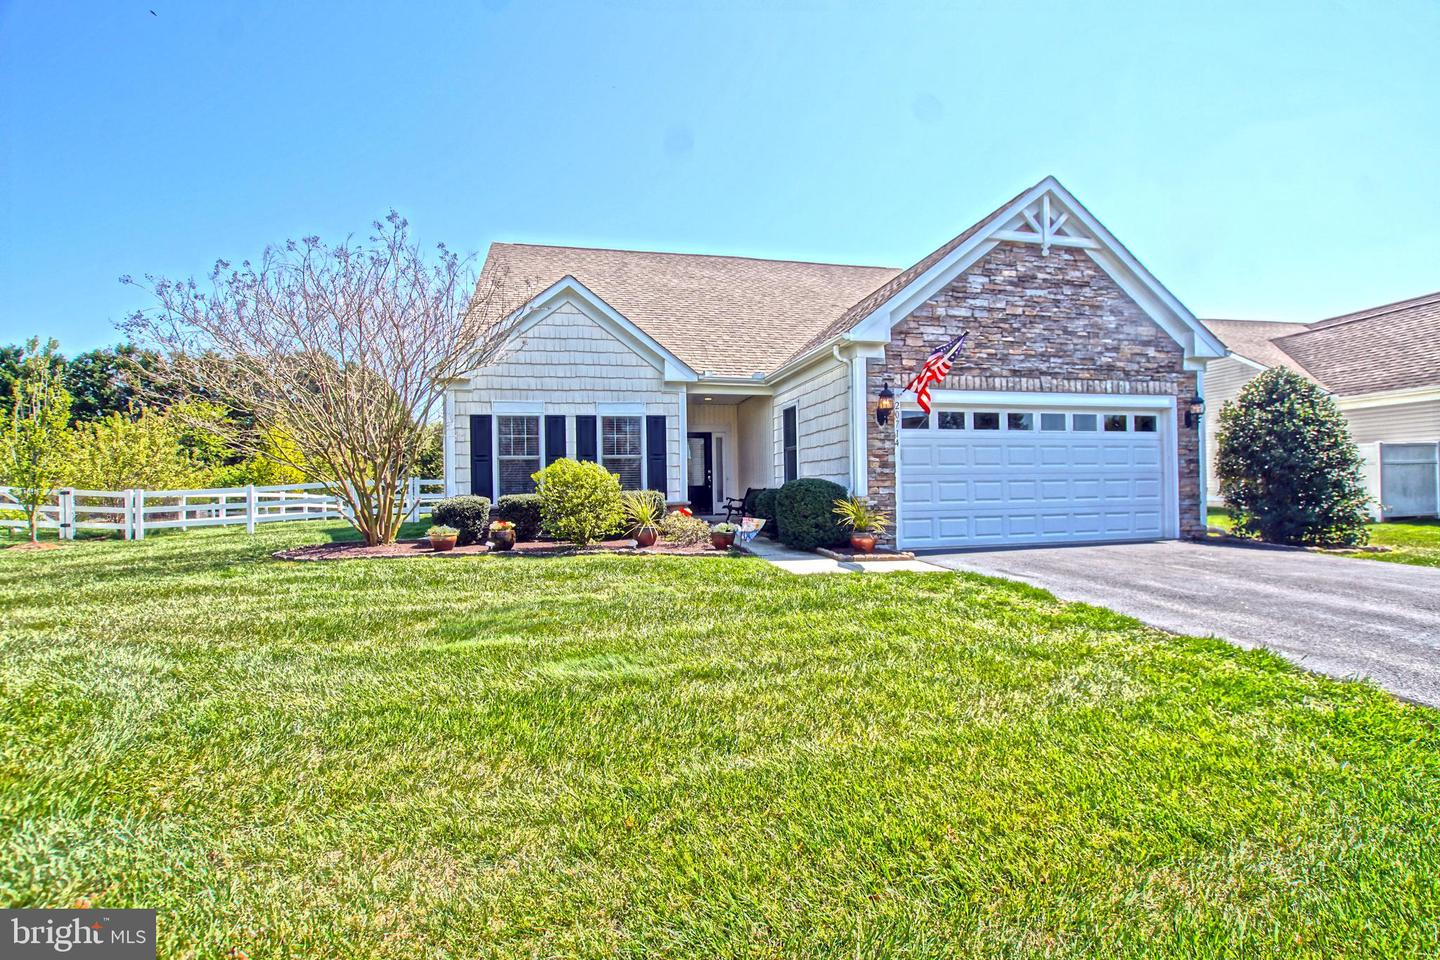 DESU159976-304104337950-2020-06-26-12-55-11 20714 Annondell Dr | Lewes, DE Real Estate For Sale | MLS# Desu159976  - Lee Ann Group